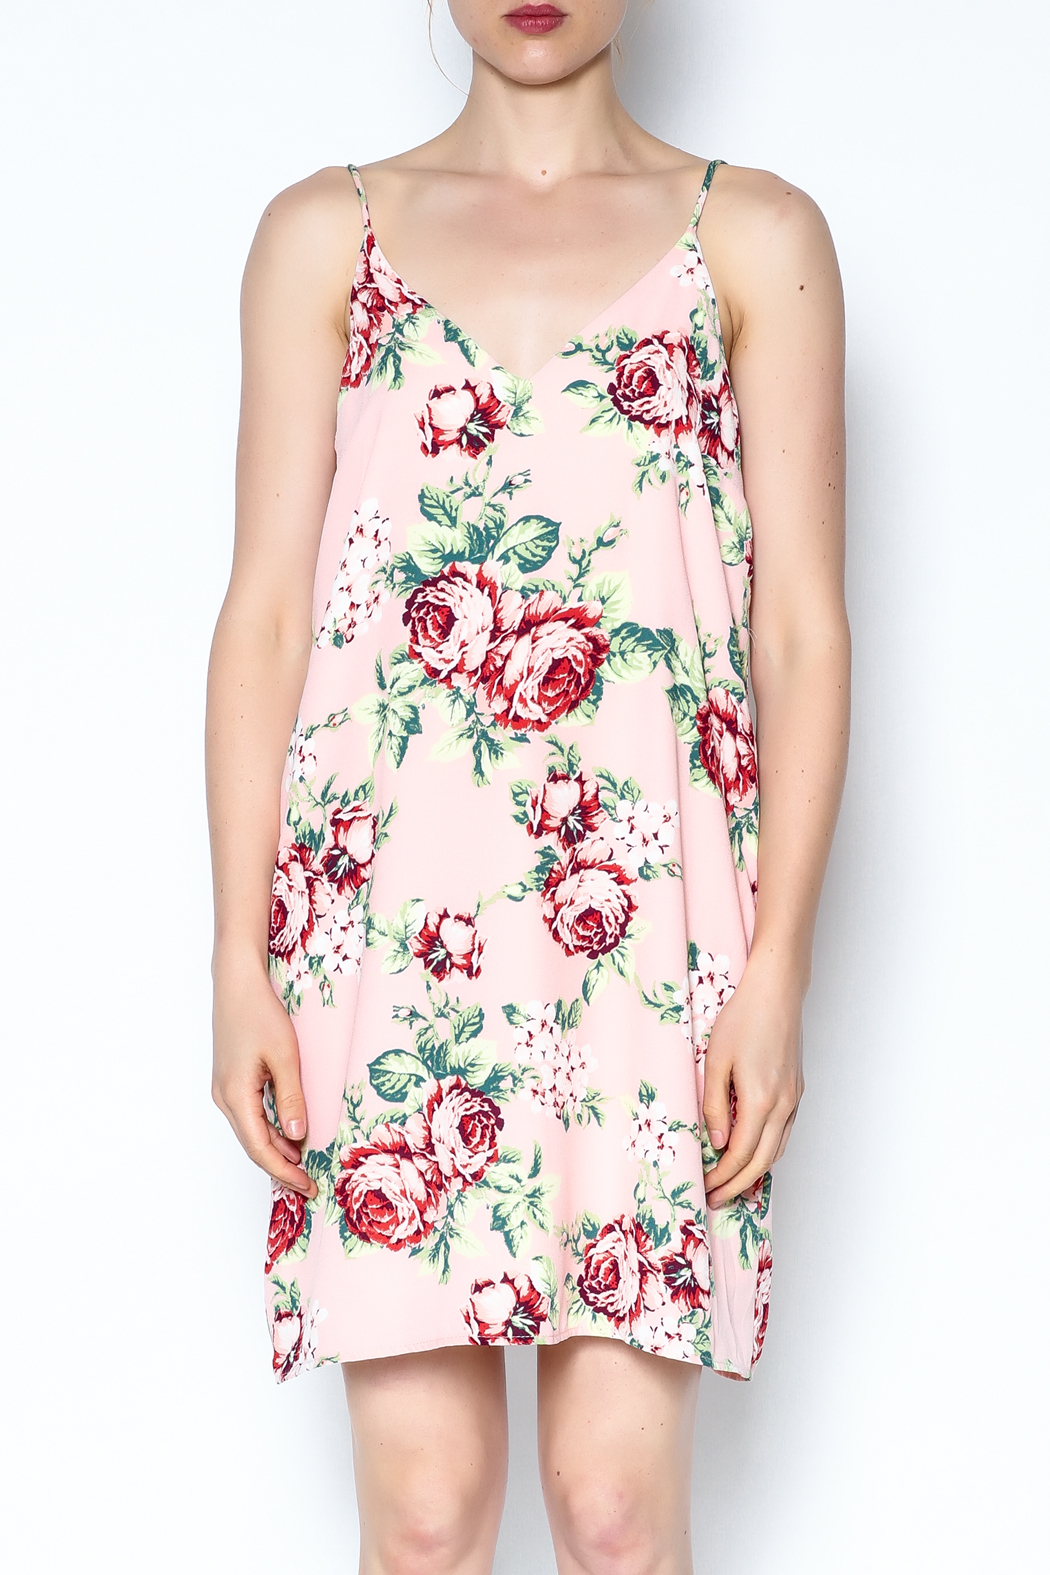 y&i clothing boutique Floral Cami Dress - Front Full Image